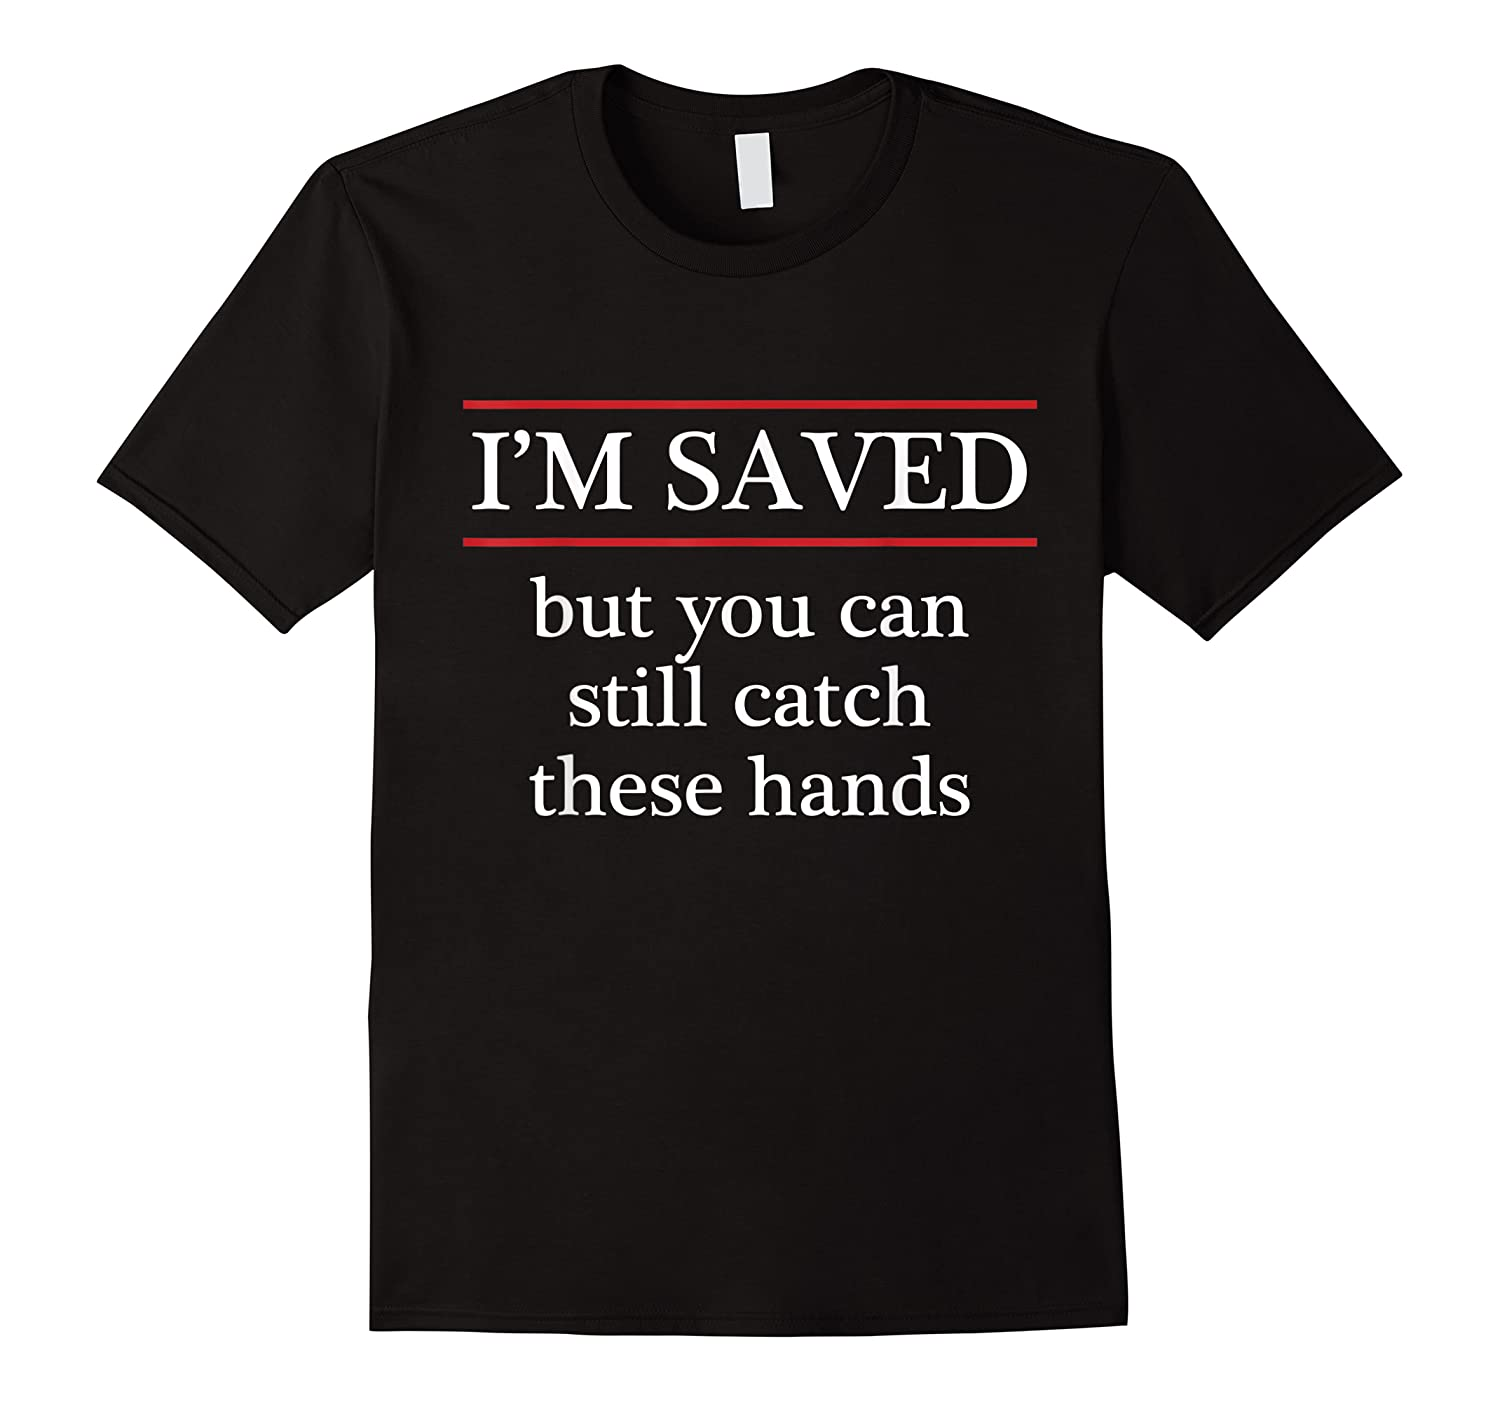 I'm Saved But You Can Still Catch These Hands Funny Shirts